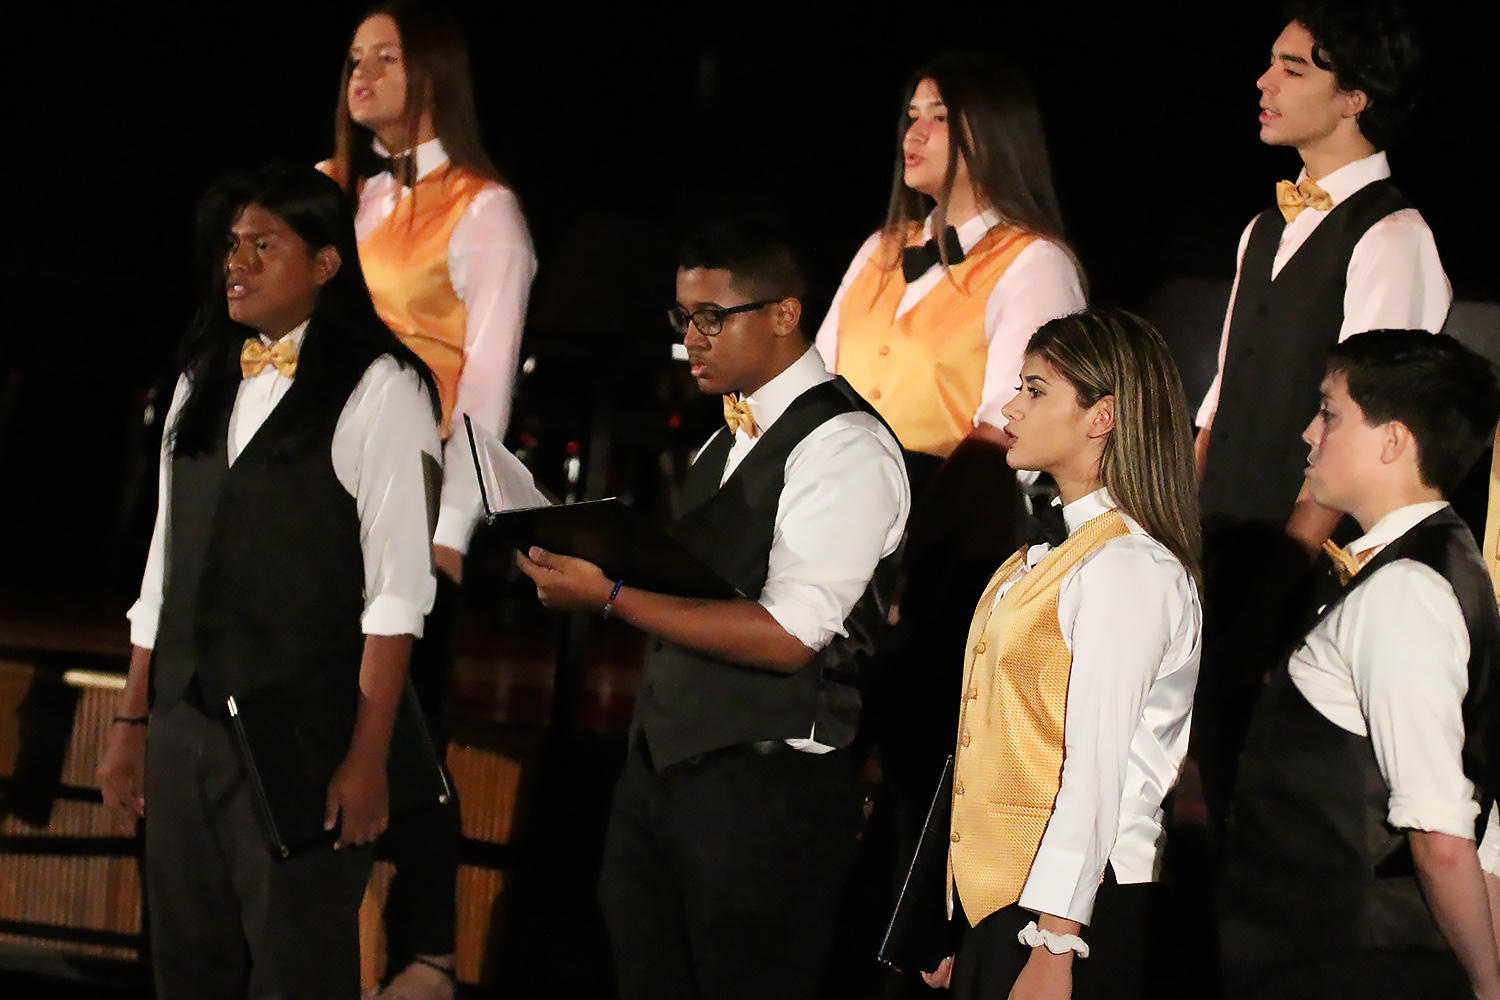 EPHS Swing Choir, Kaleidoscope Concert 2018